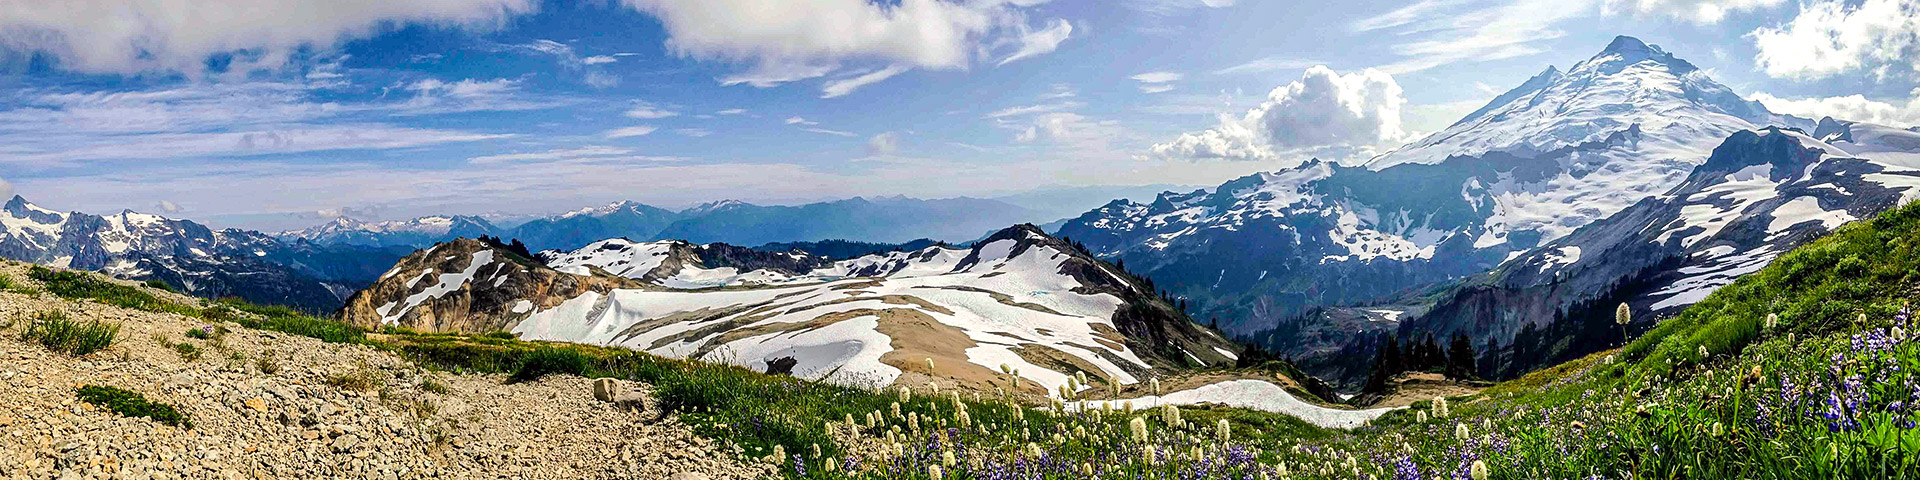 Best hikes in Washington